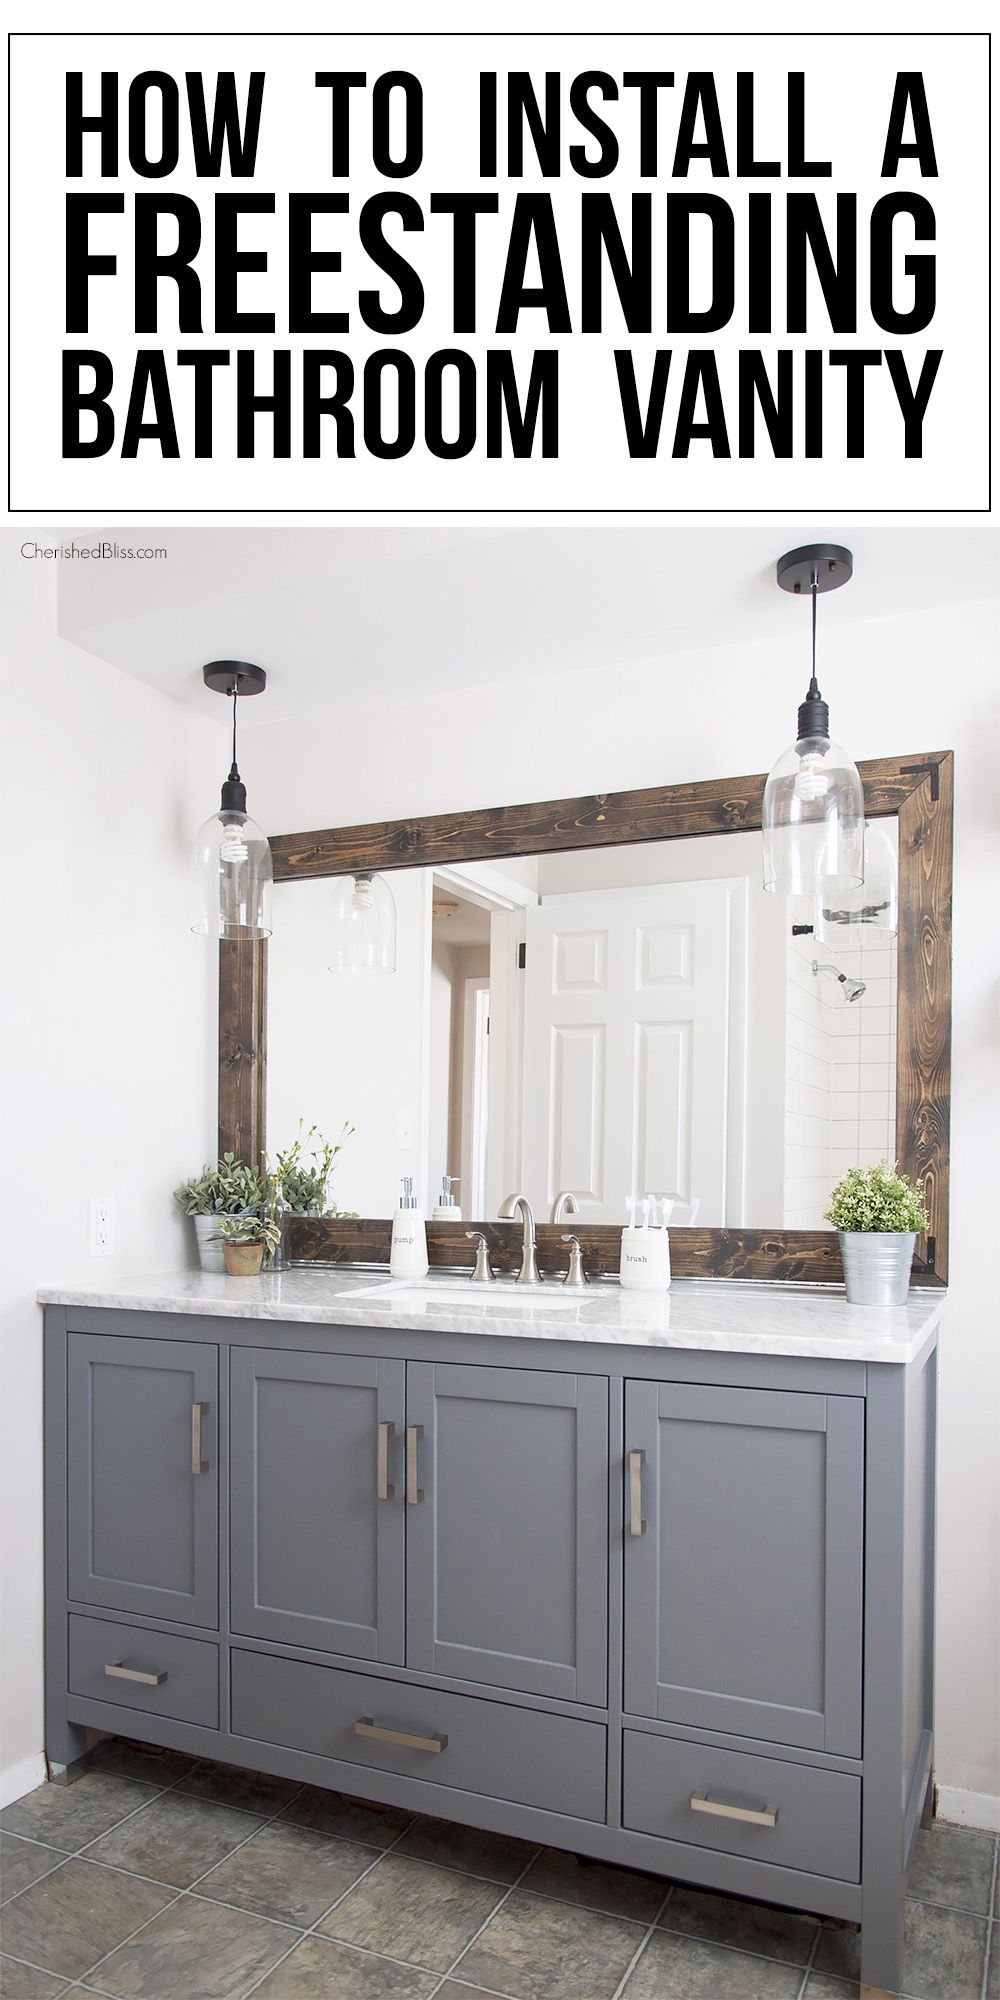 Photo of How to Install a Freestanding Bathroom Vanity – Cherished Bliss